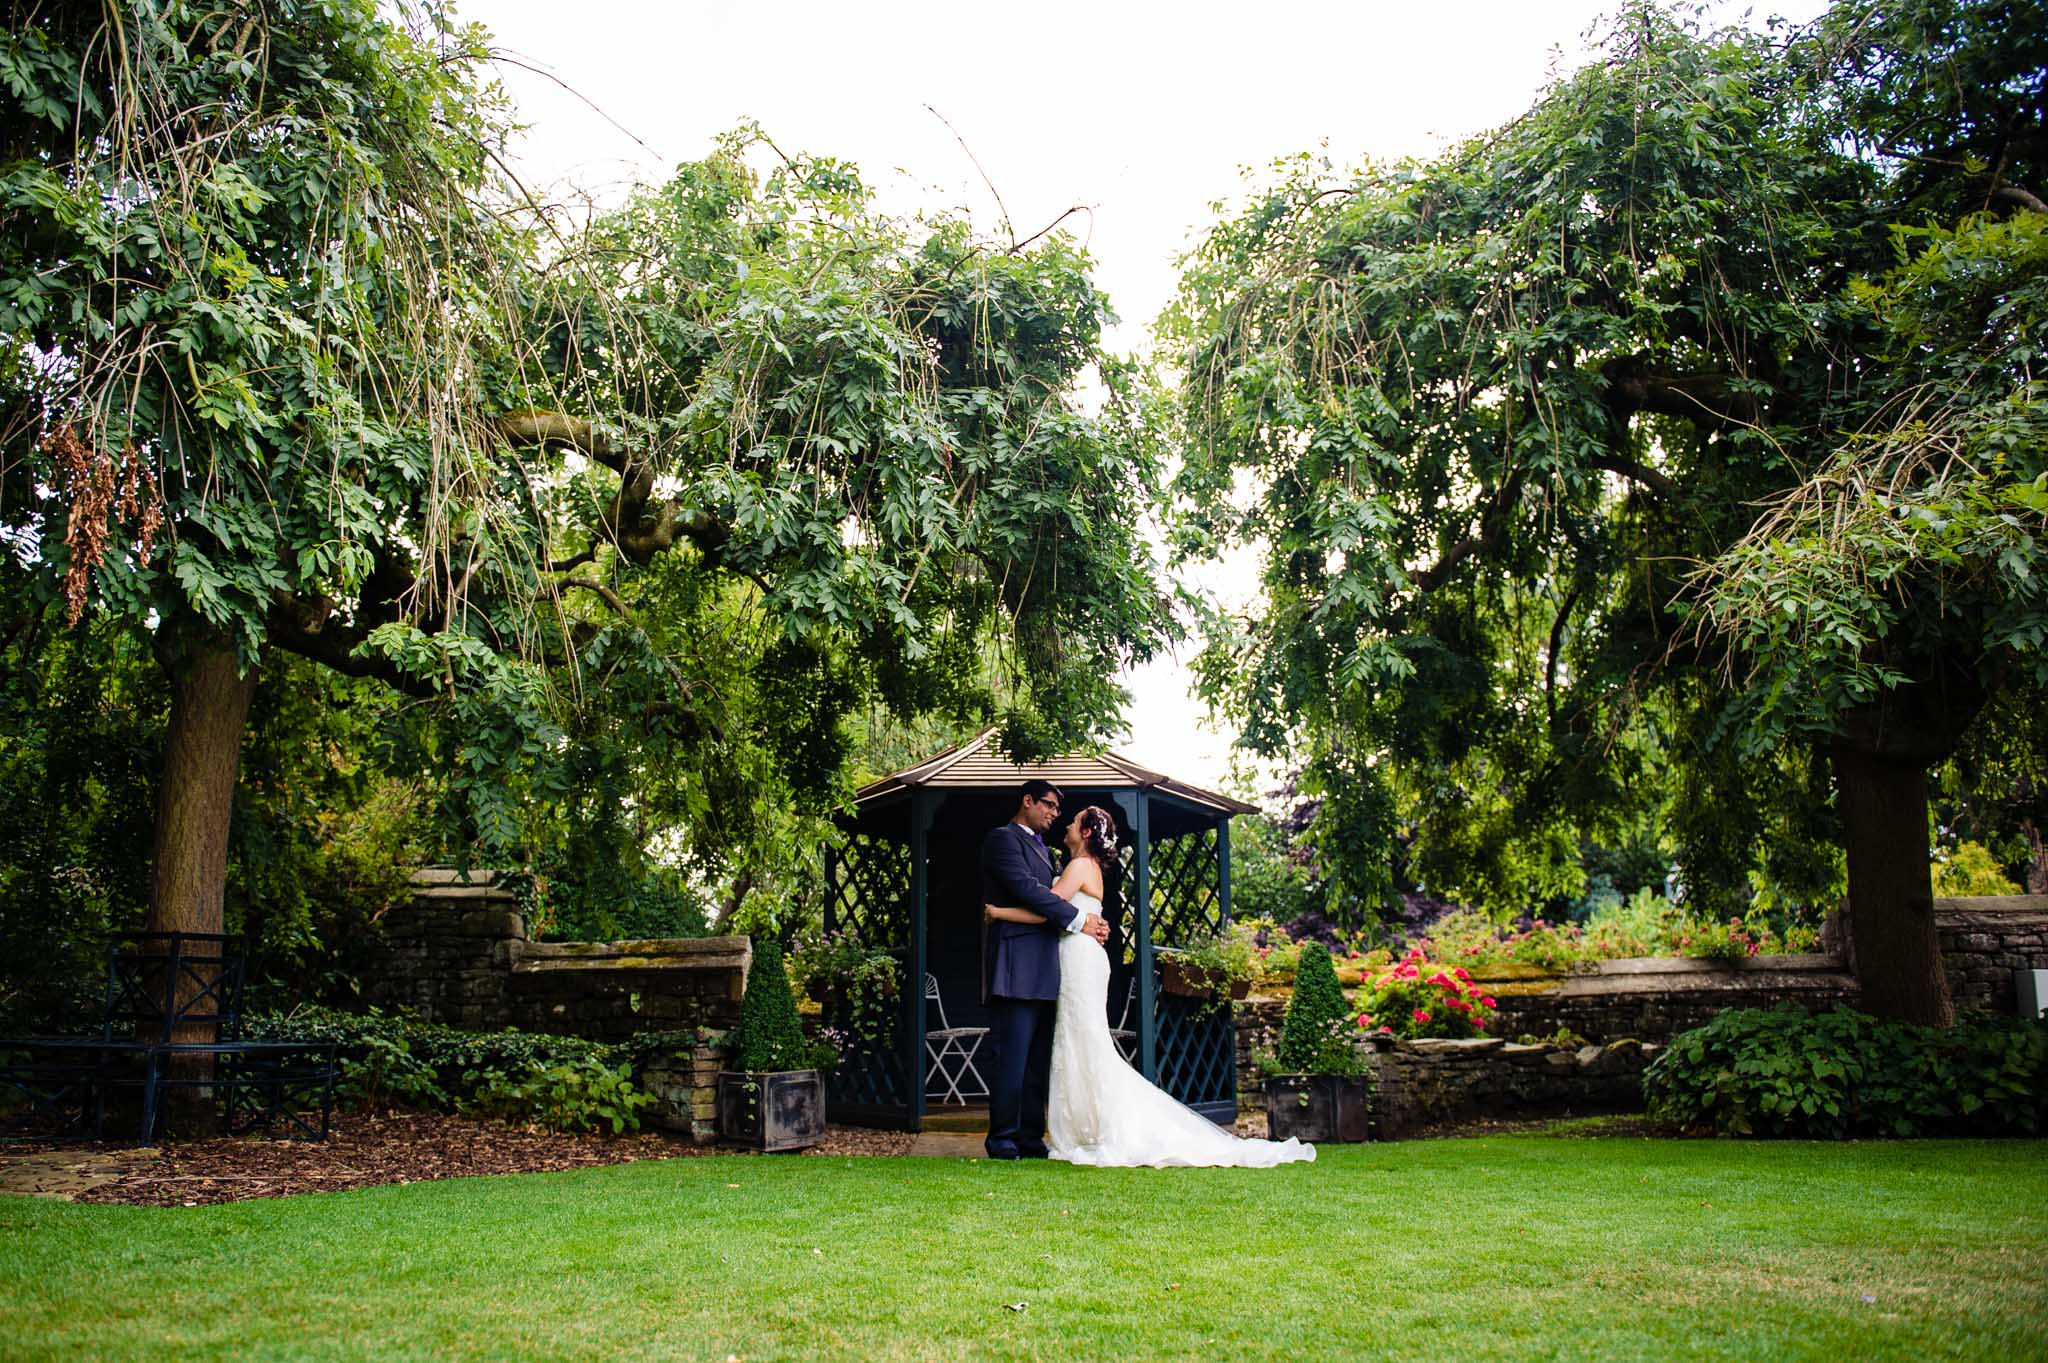 The married couple have a hug by the the Gazeebo